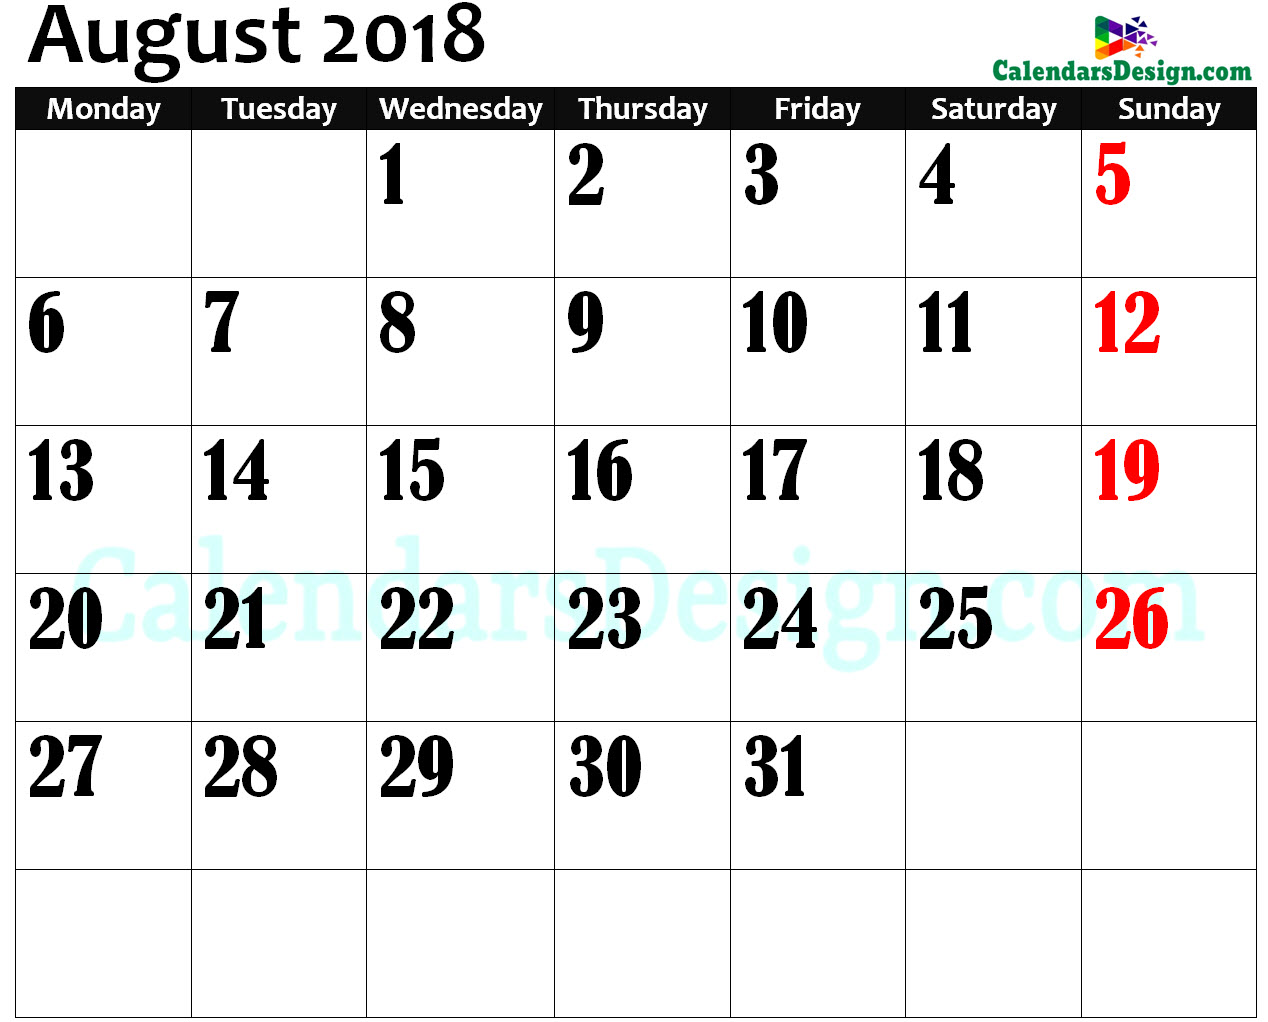 Print August 2018 Calendar in Page Format